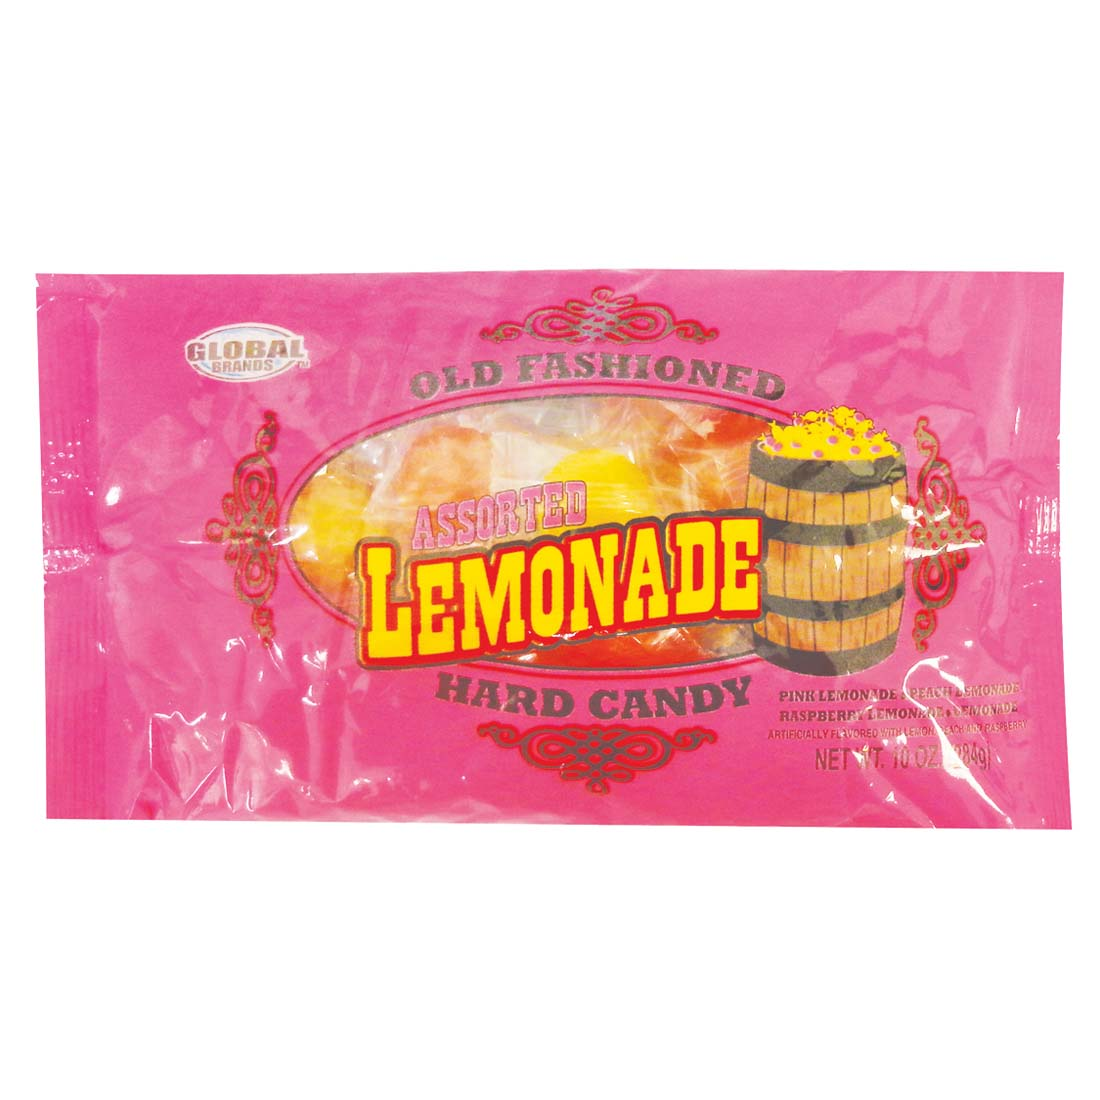 View GLOBAL HARD CANDY 10 OUNCE ASSORTED LEMONADE FLAVORS